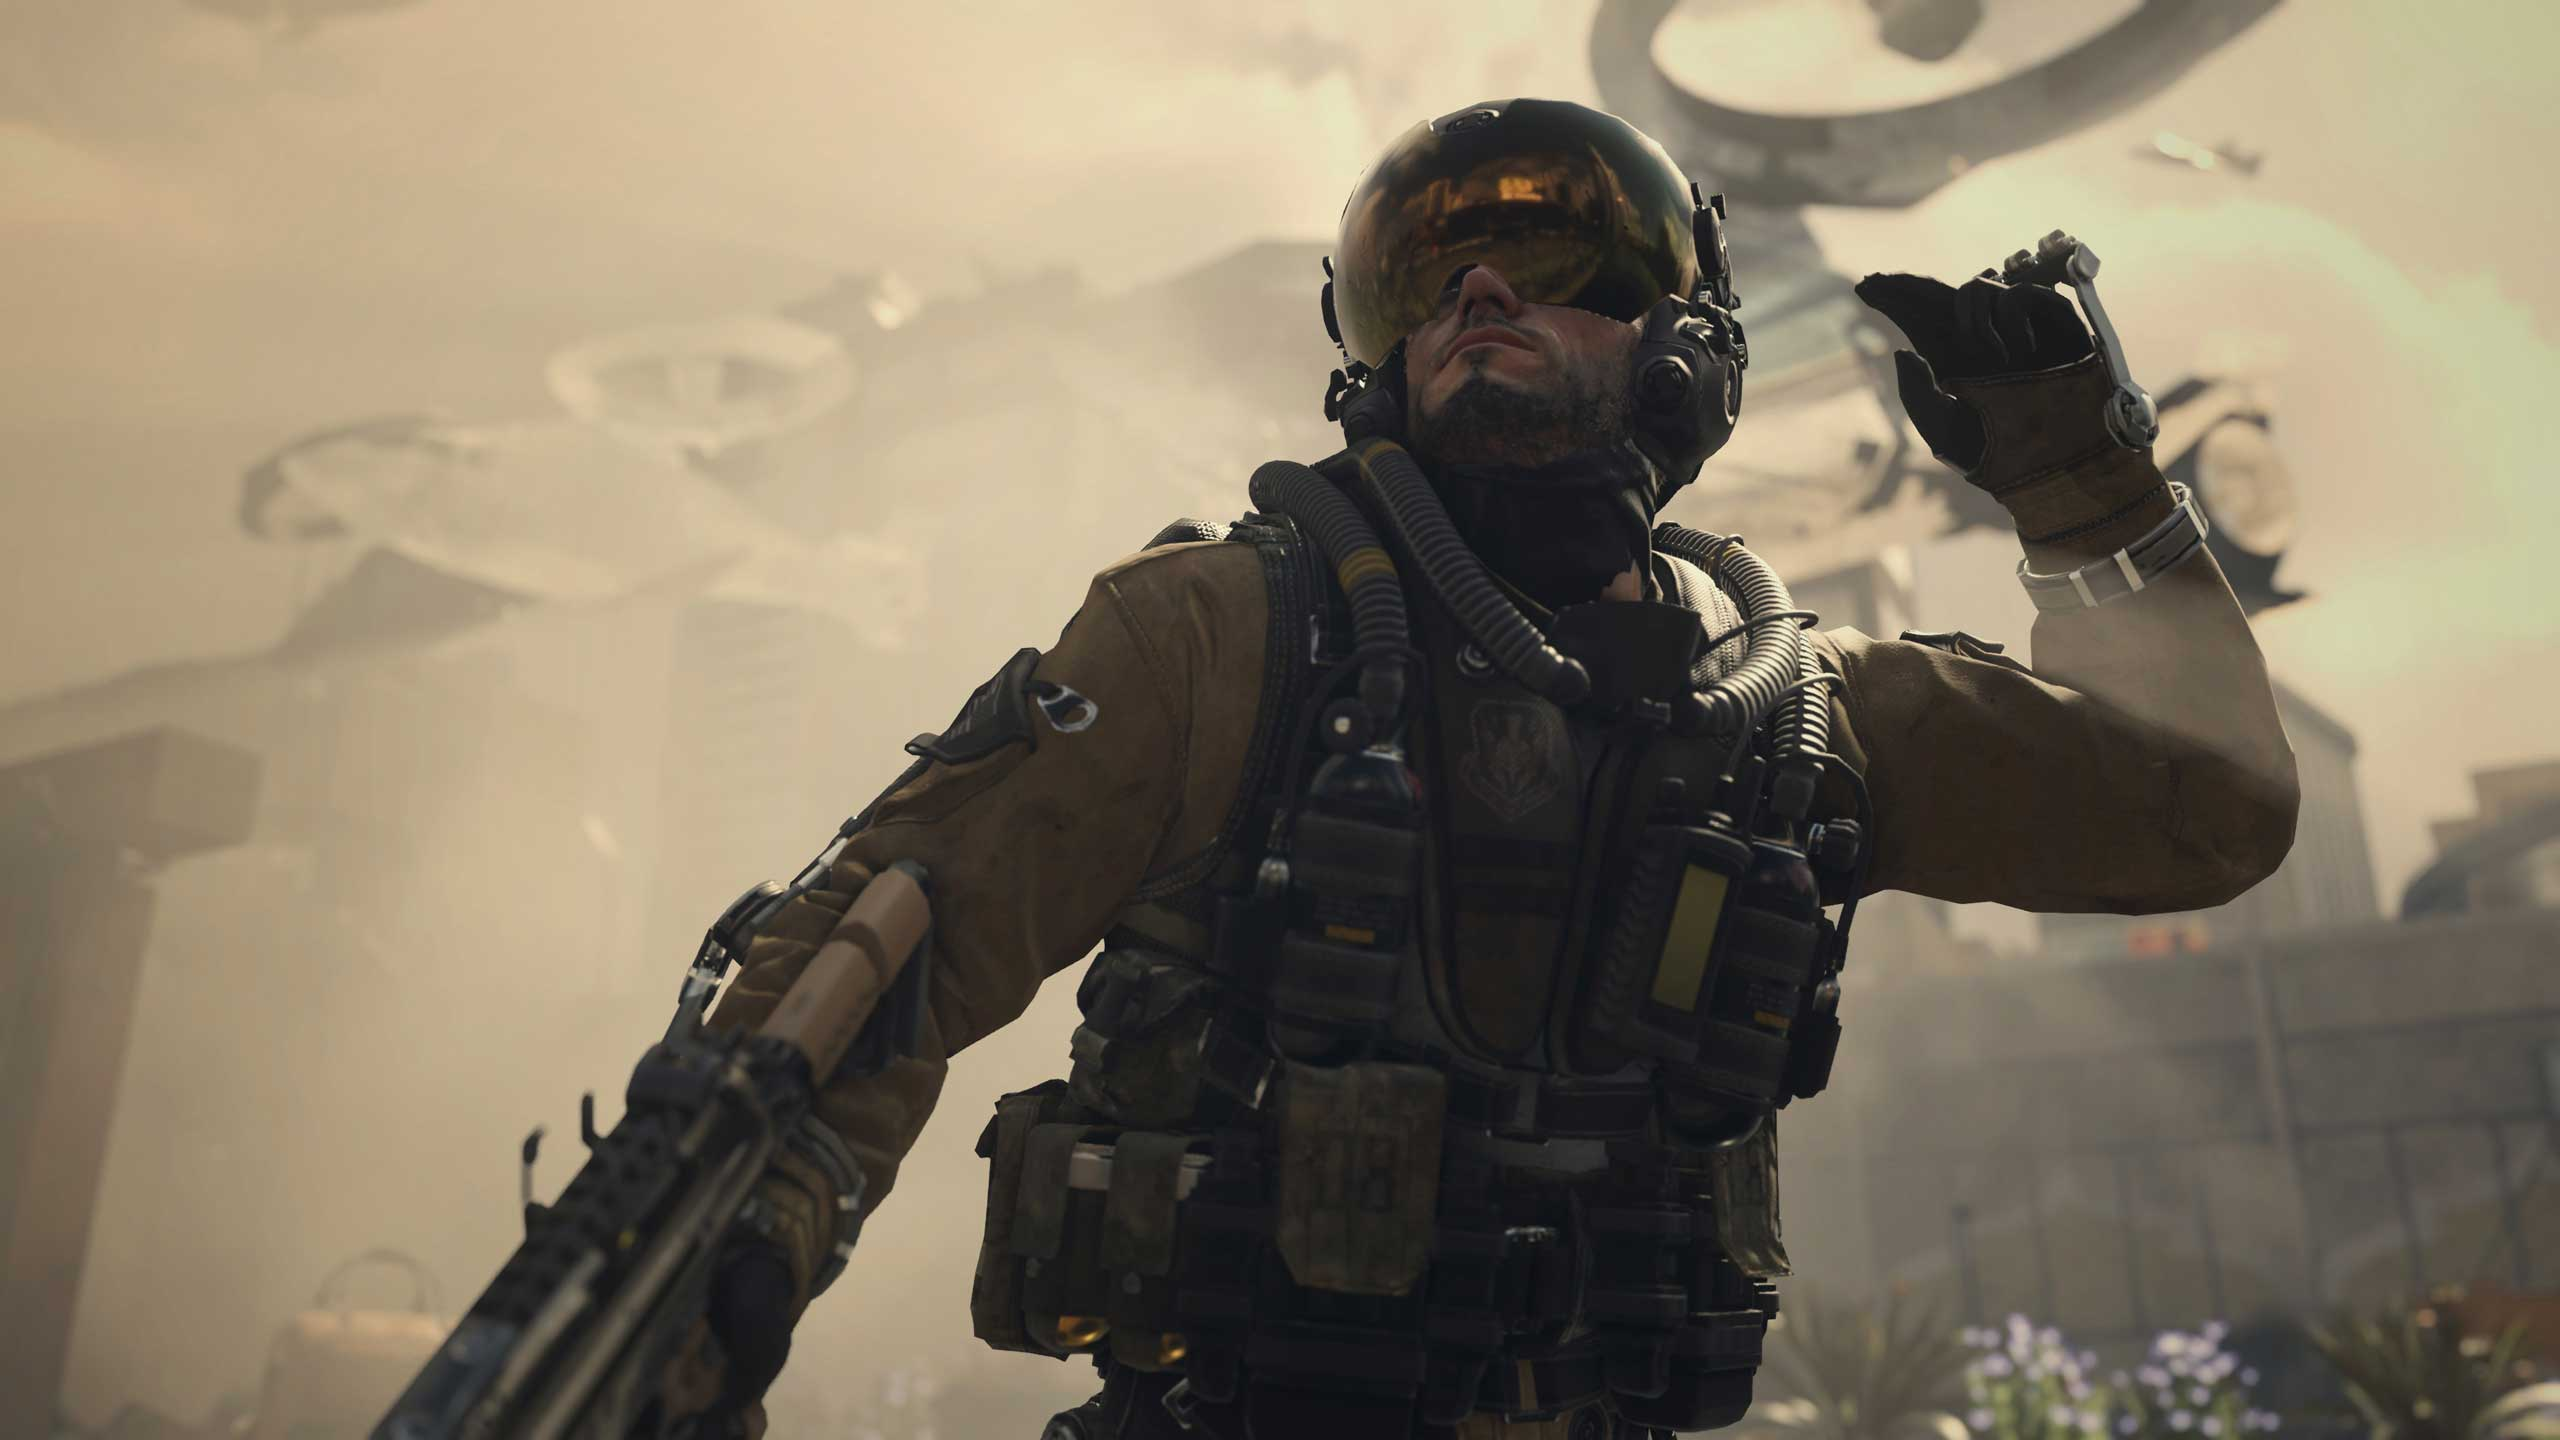 Call of Duty: Advanced Warfare. Activision's futuristic first-person shooter in which players take on a rogue private military company uses a brand new engine built specifically for PCs and new-gen consoles to handle its cutting-edge lighting, animation and physics.